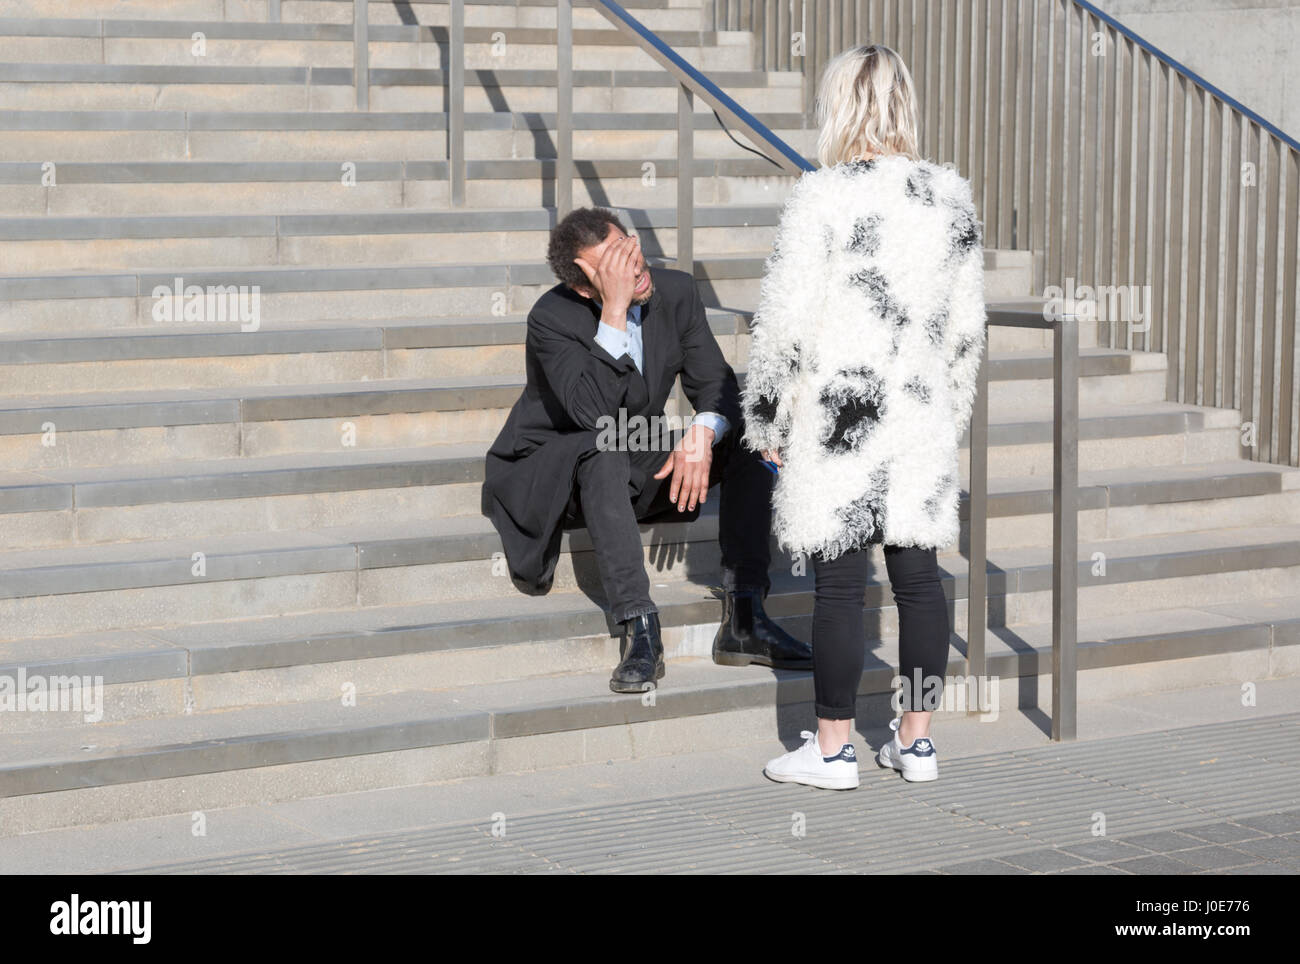 White adult woman standing next to sitting in stairs man and arguing. Horizontal full frame - Stock Image